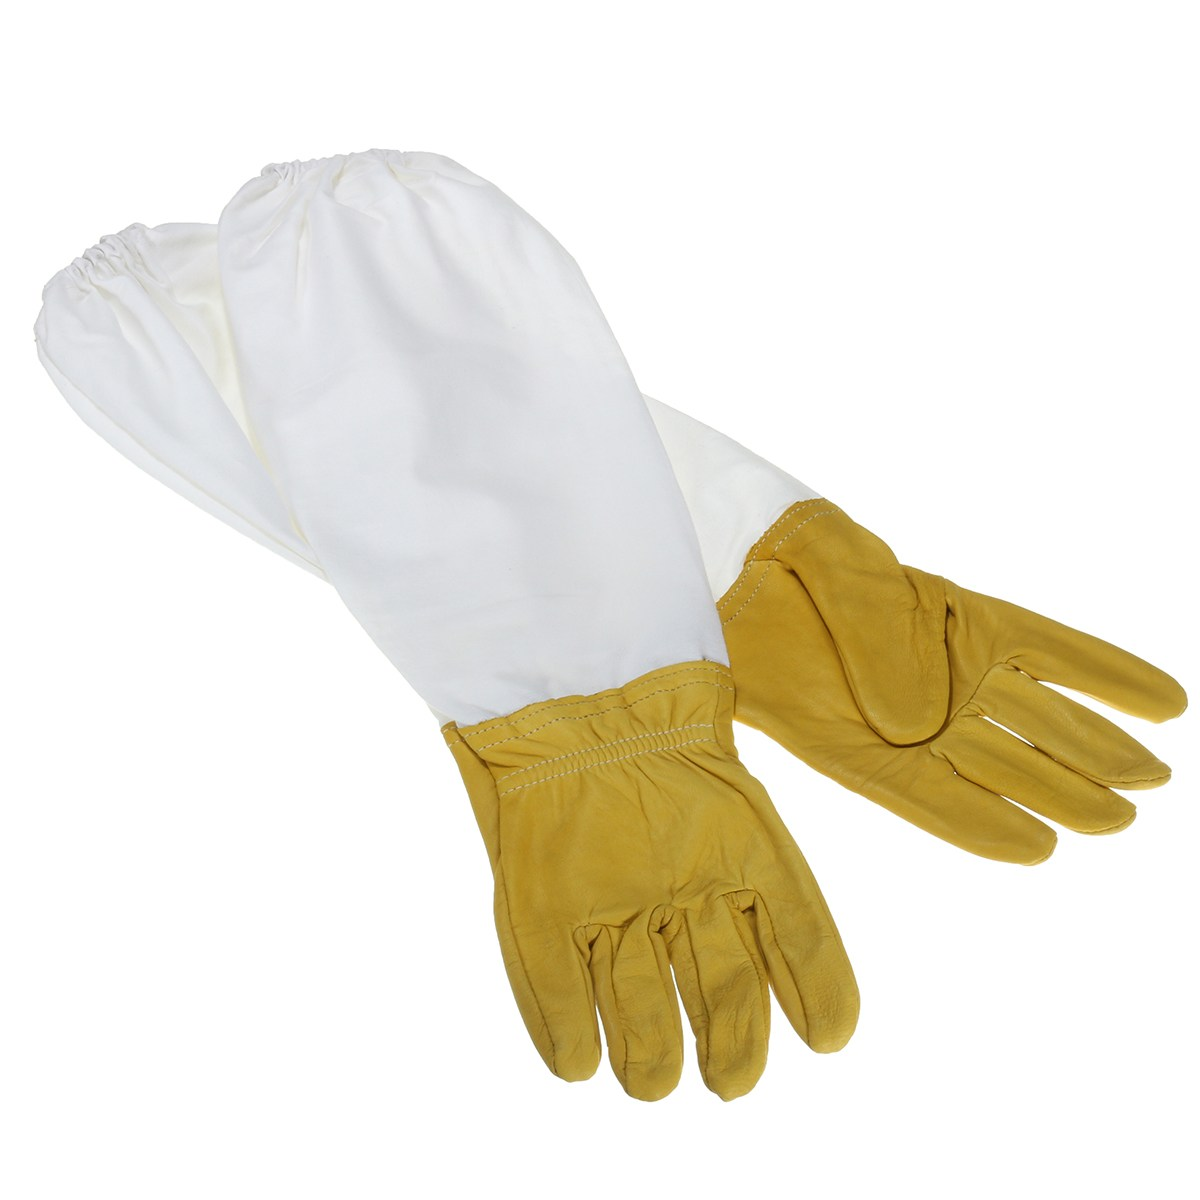 NEW Safurance 2 Pair Protective Vented Long Sleeves Sheepskin Bee Keeping Beekeeping Gloves Workplace Safety комплектующие для кормушек ice 2 beekeeping entrance feeder